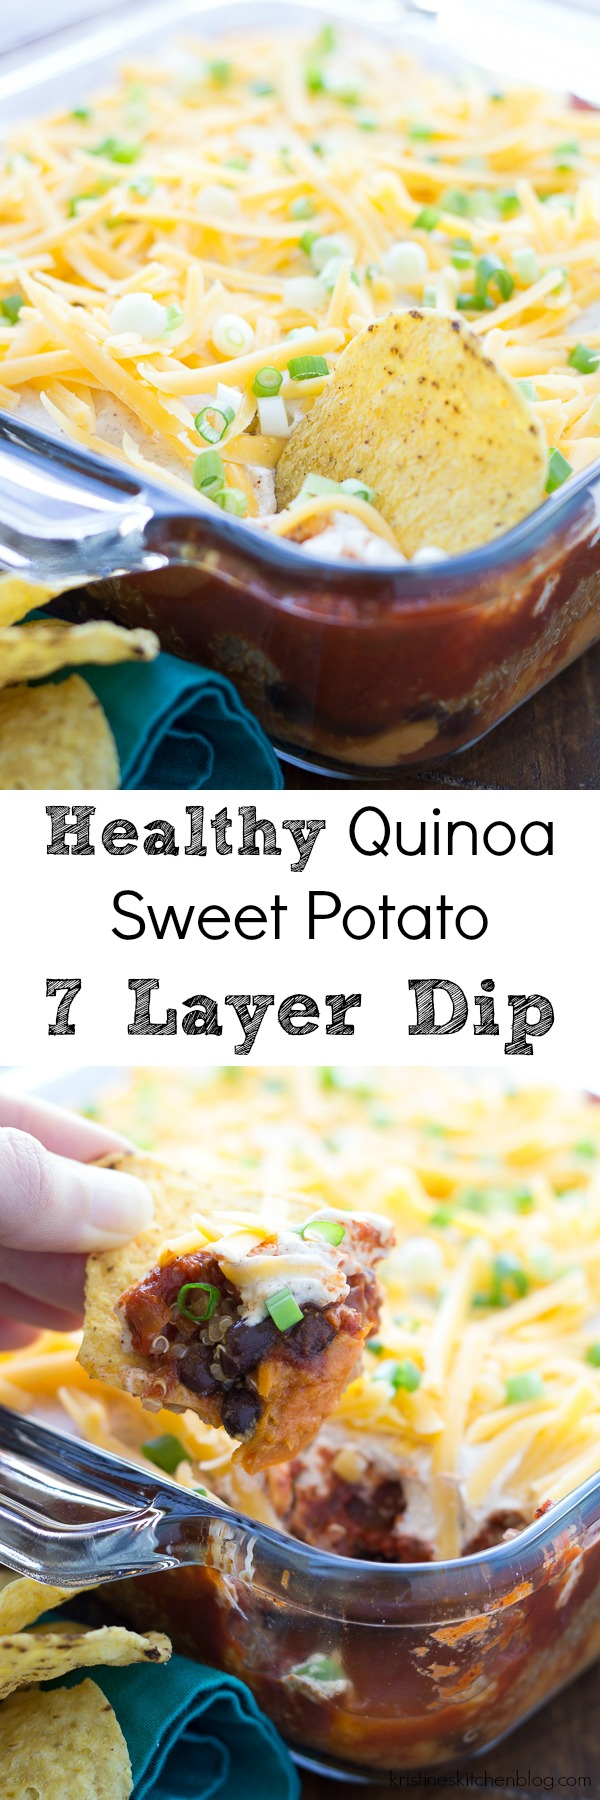 We love this Healthy Quinoa and Sweet Potato 7 Layer Dip (with black beans) for an appetizer or dinner! Make it for game day or your next party!